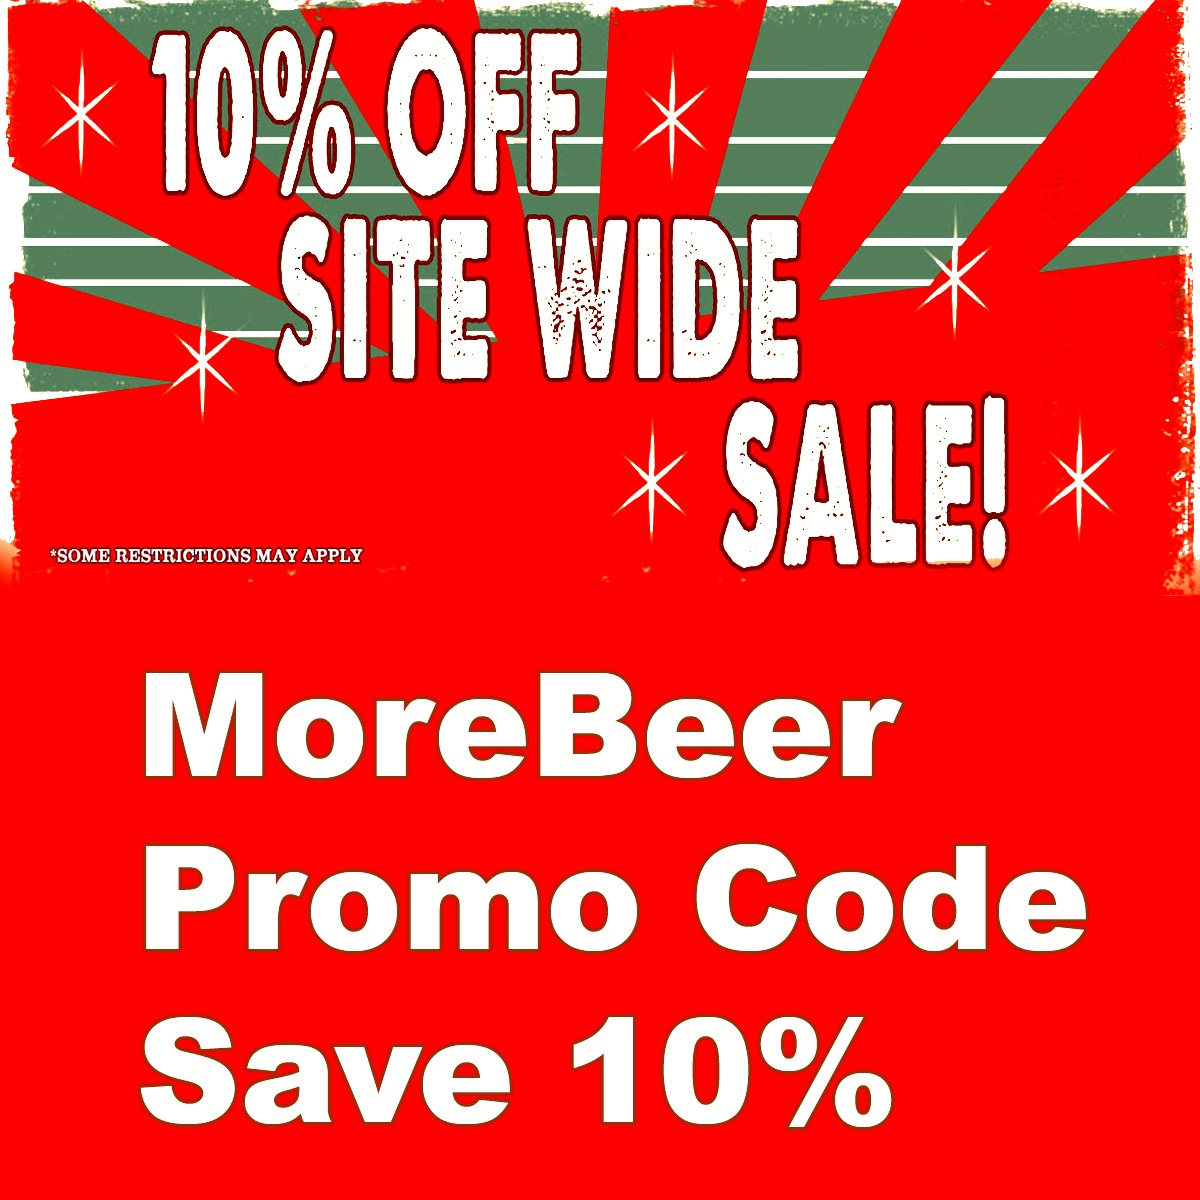 Save 10% Site Wide at MoreBeer.com With this More Beer Coupon